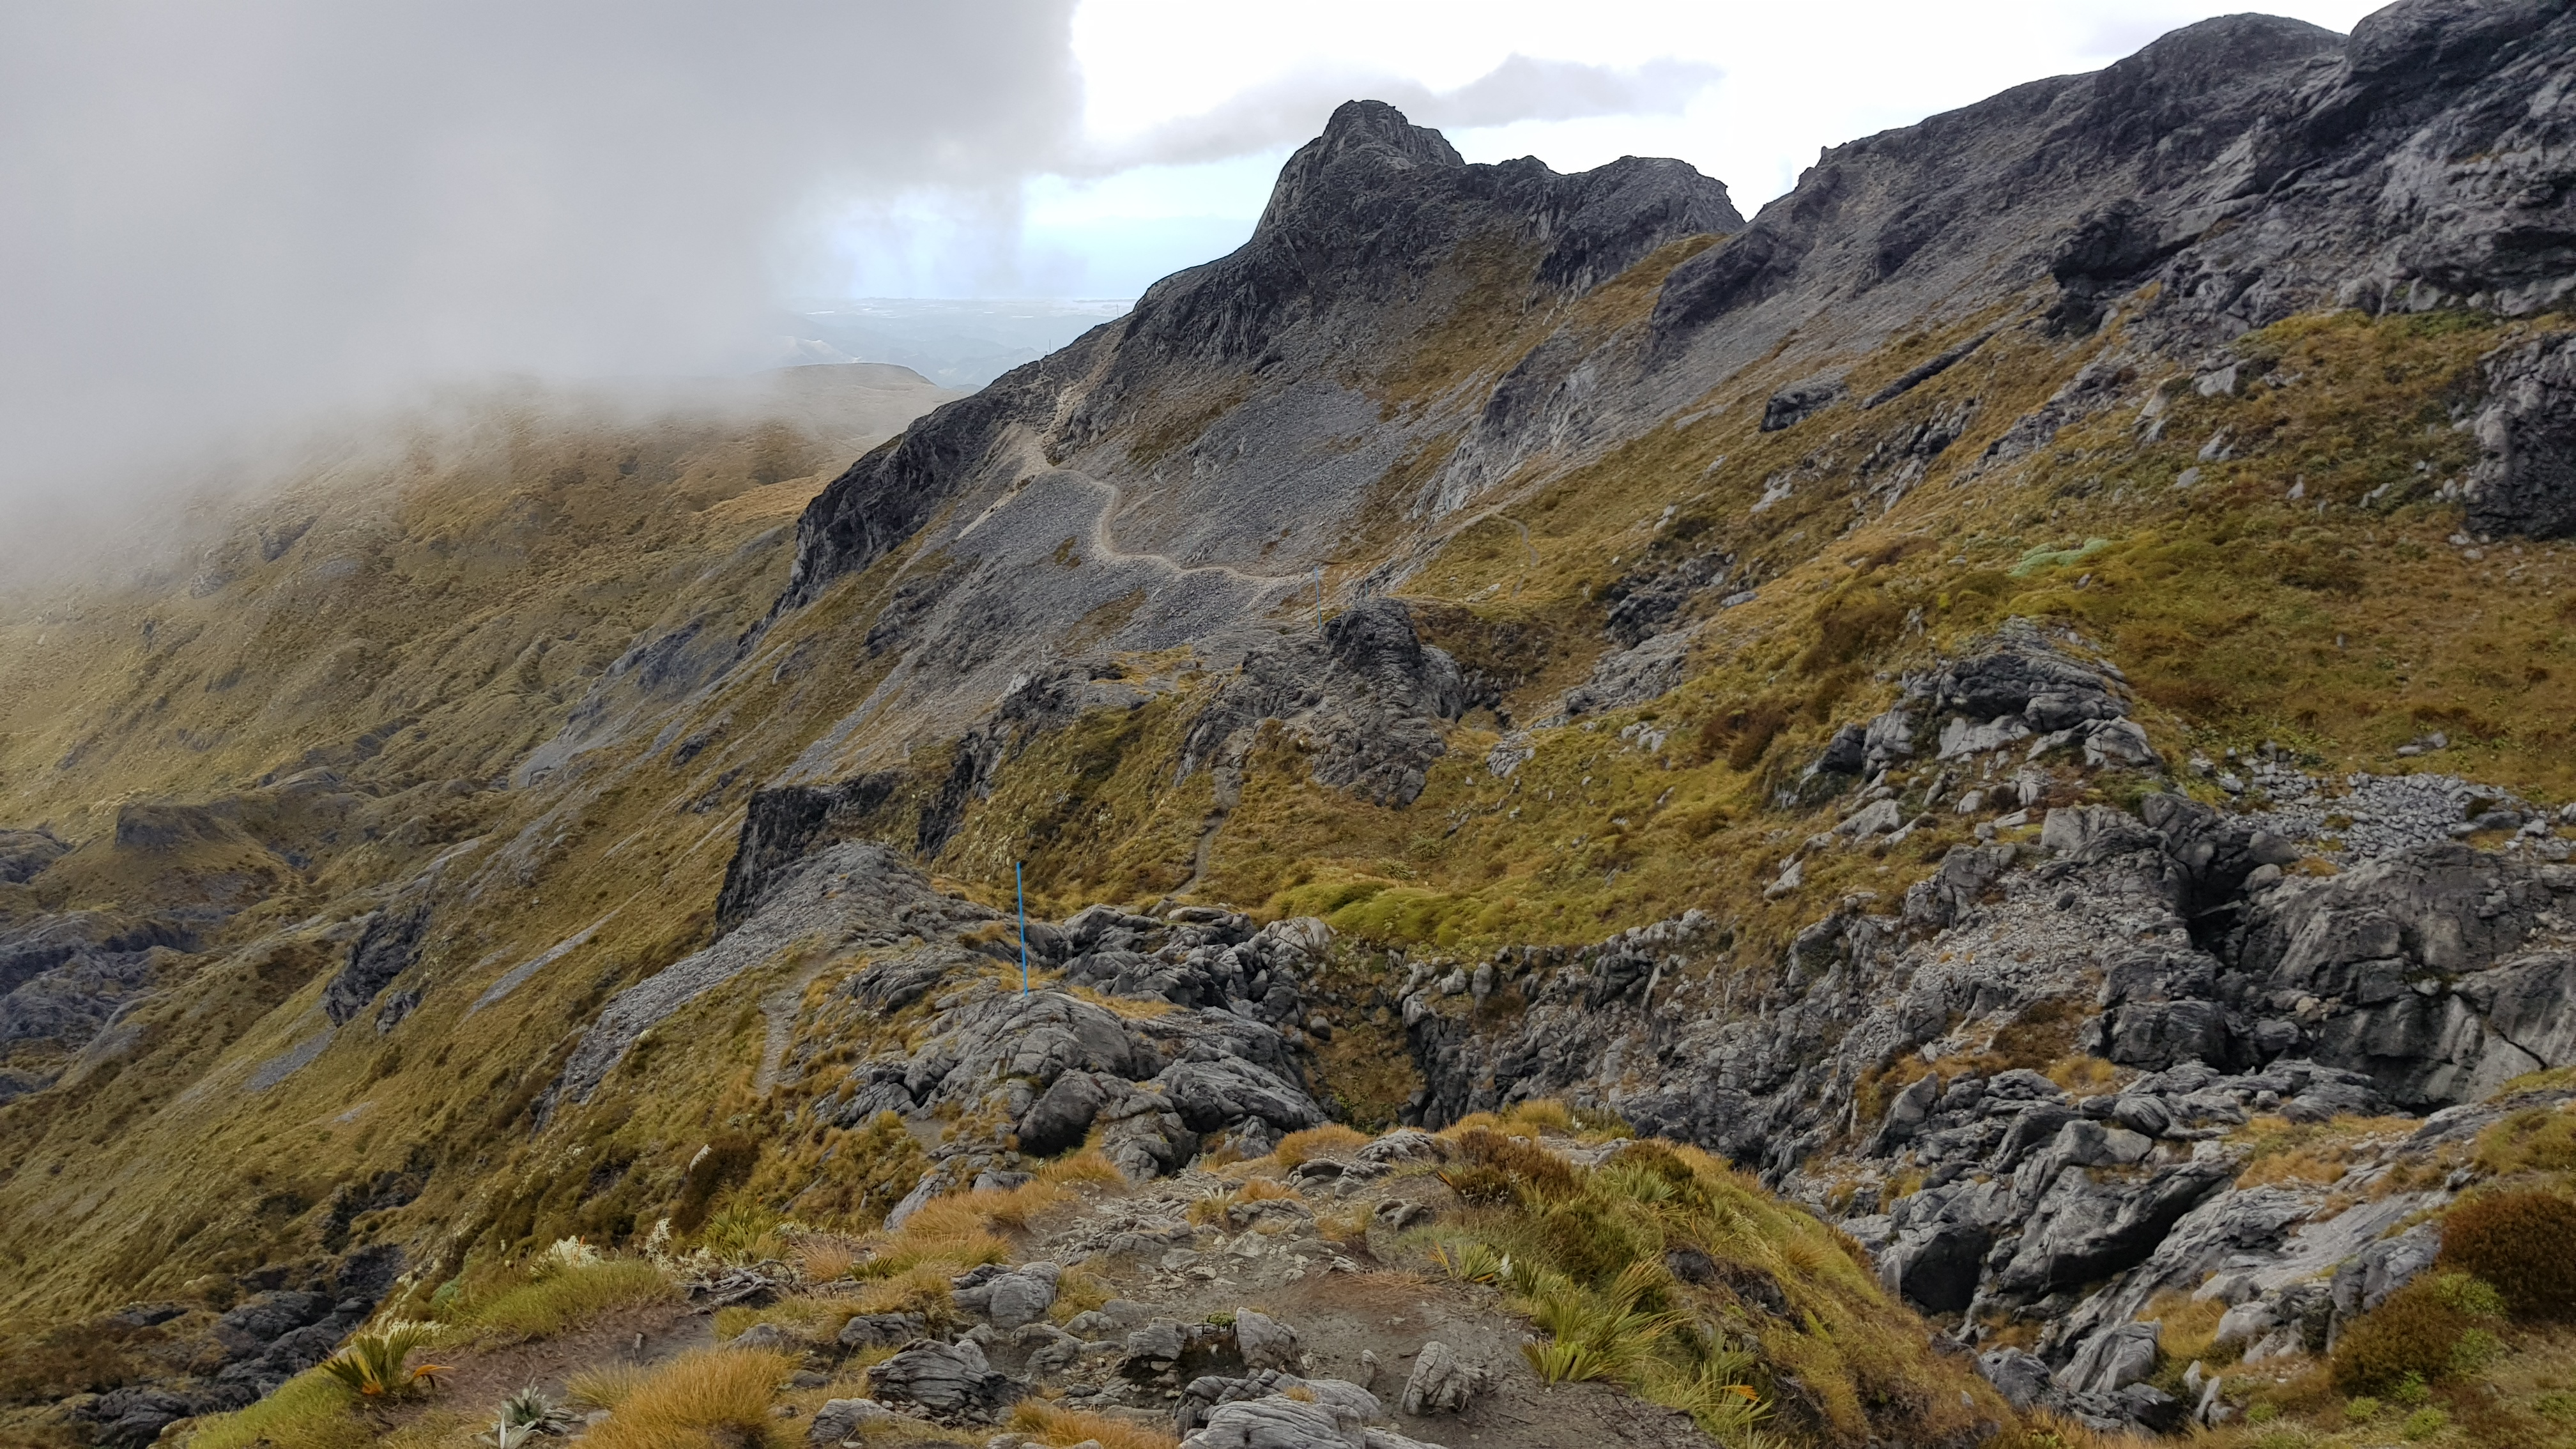 Looking back at the Mt Arthur Route